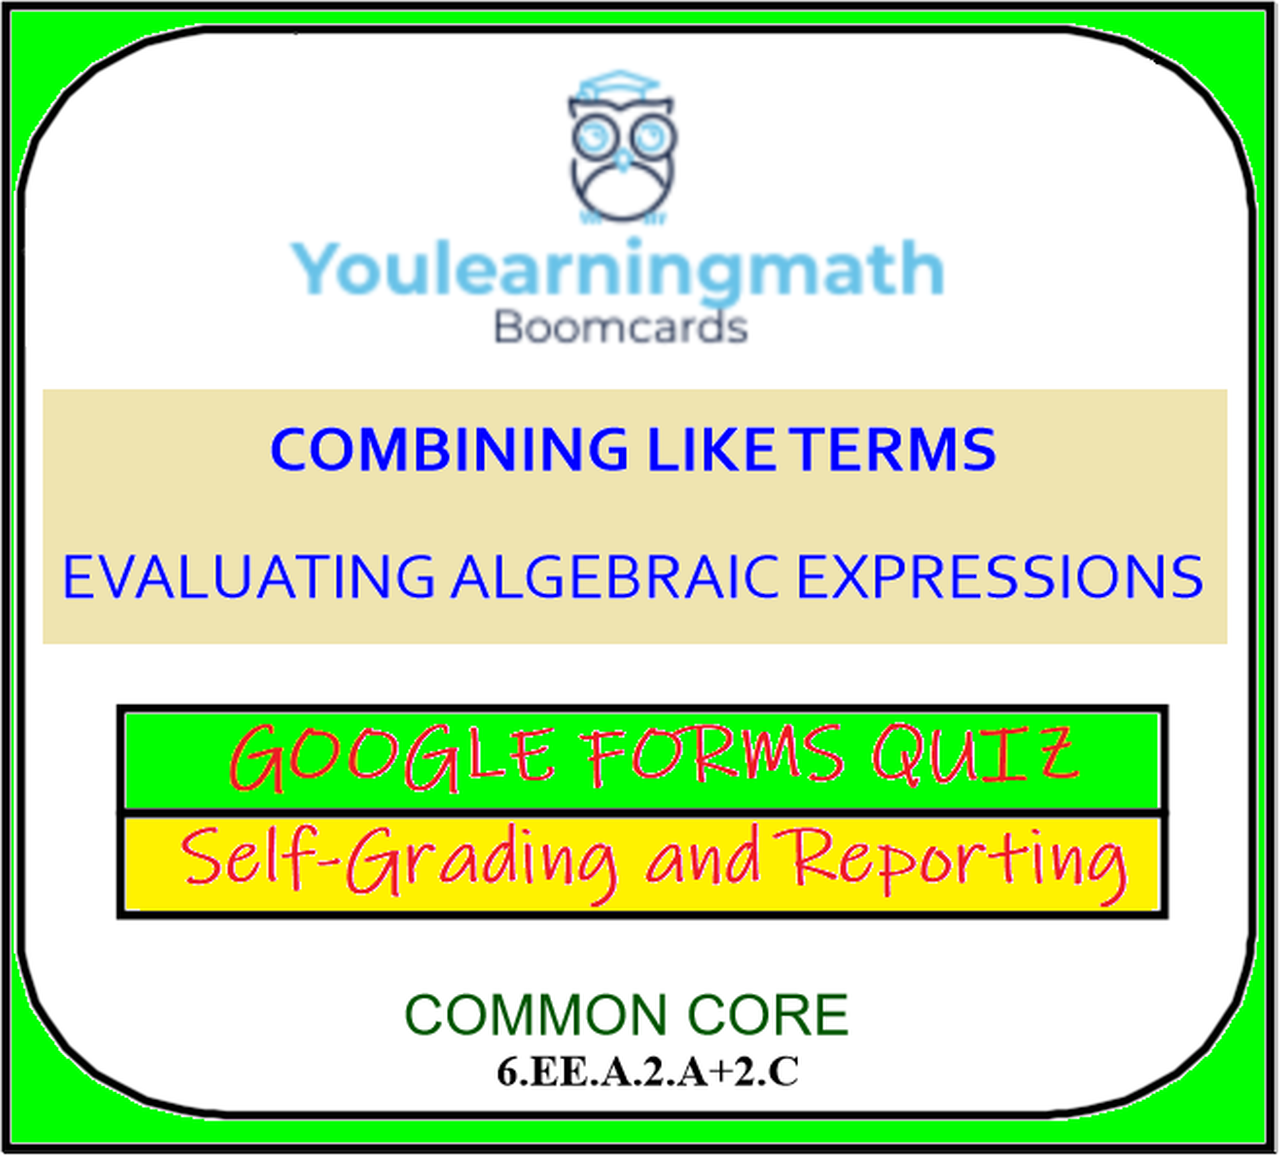 Combining Like Terms And Evaluating Algebraic Expressions